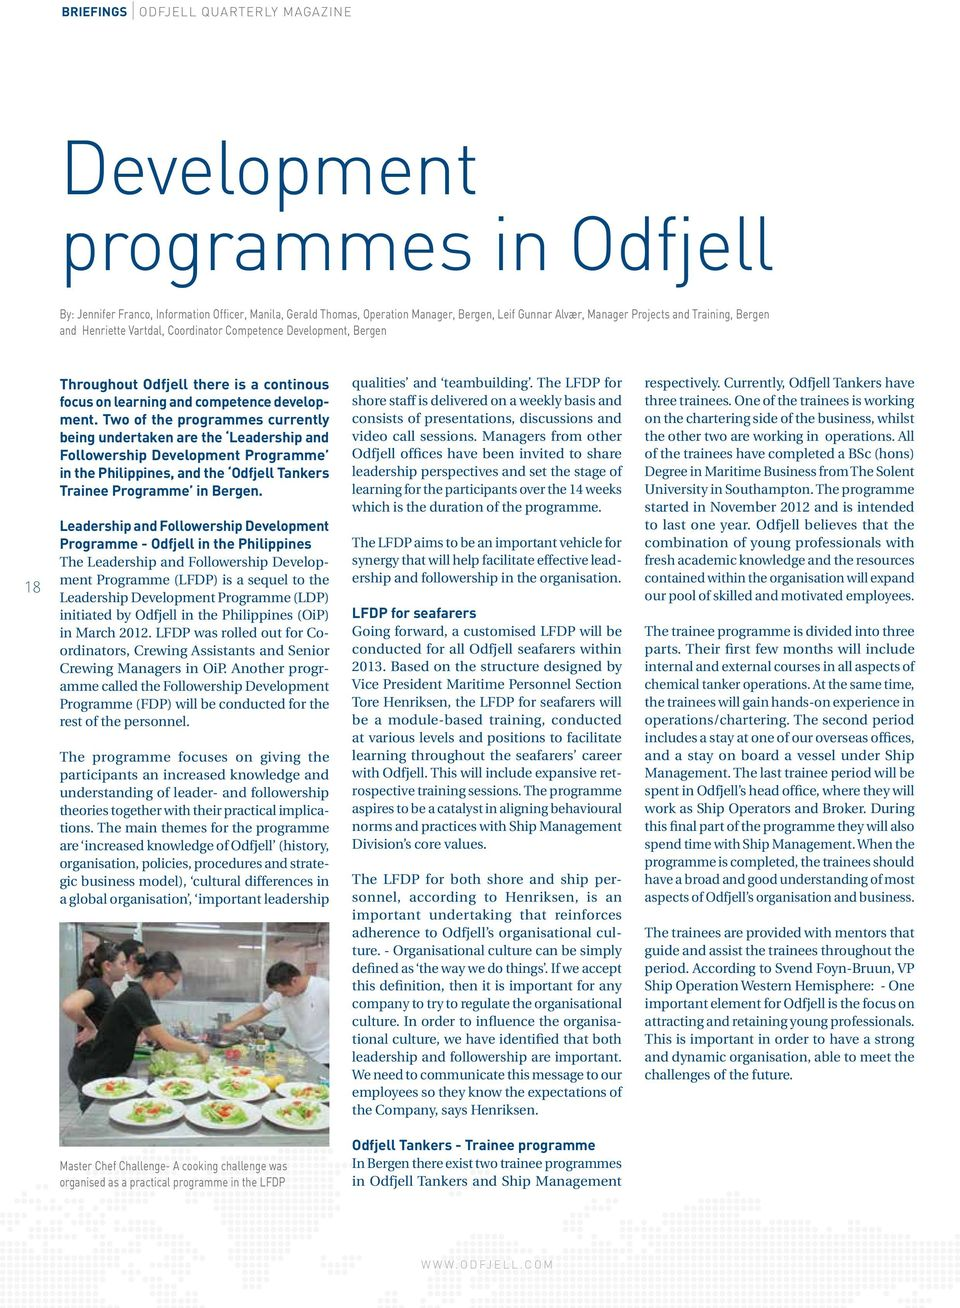 Two of the programmes currently being undertaken are the Leadership and Followership Development Programme in the Philippines, and the Odfjell Tankers Trainee Programme in Bergen.